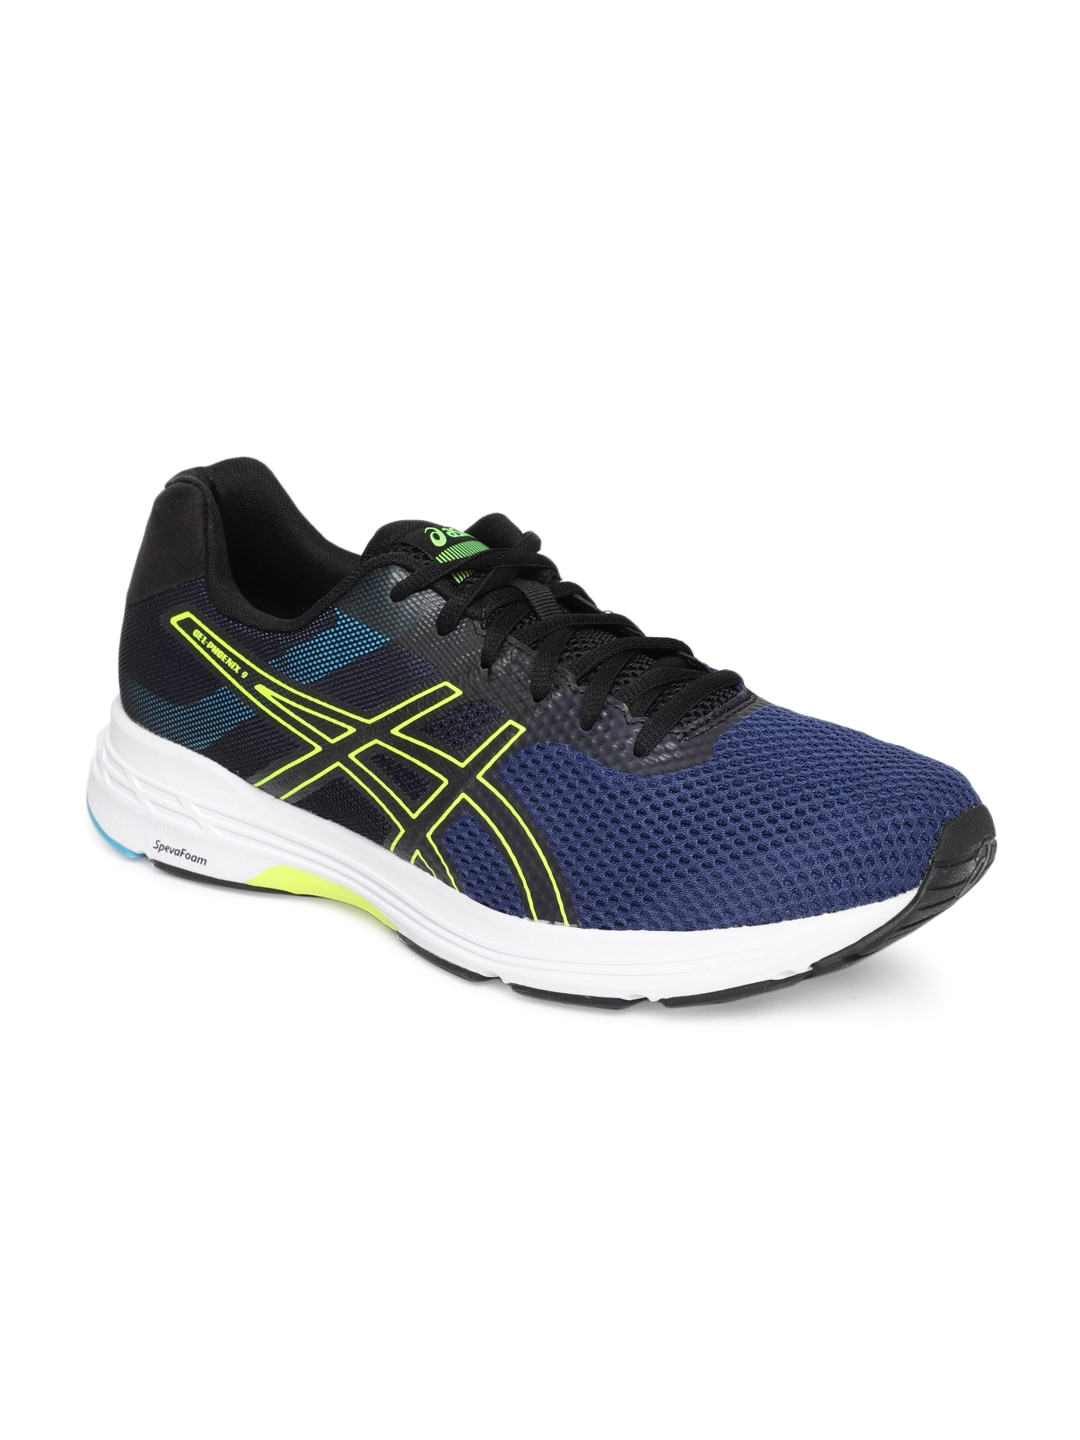 42f83b28b664 Sports Shoes for Men - Buy Men Sports Shoes Online in India - Myntra